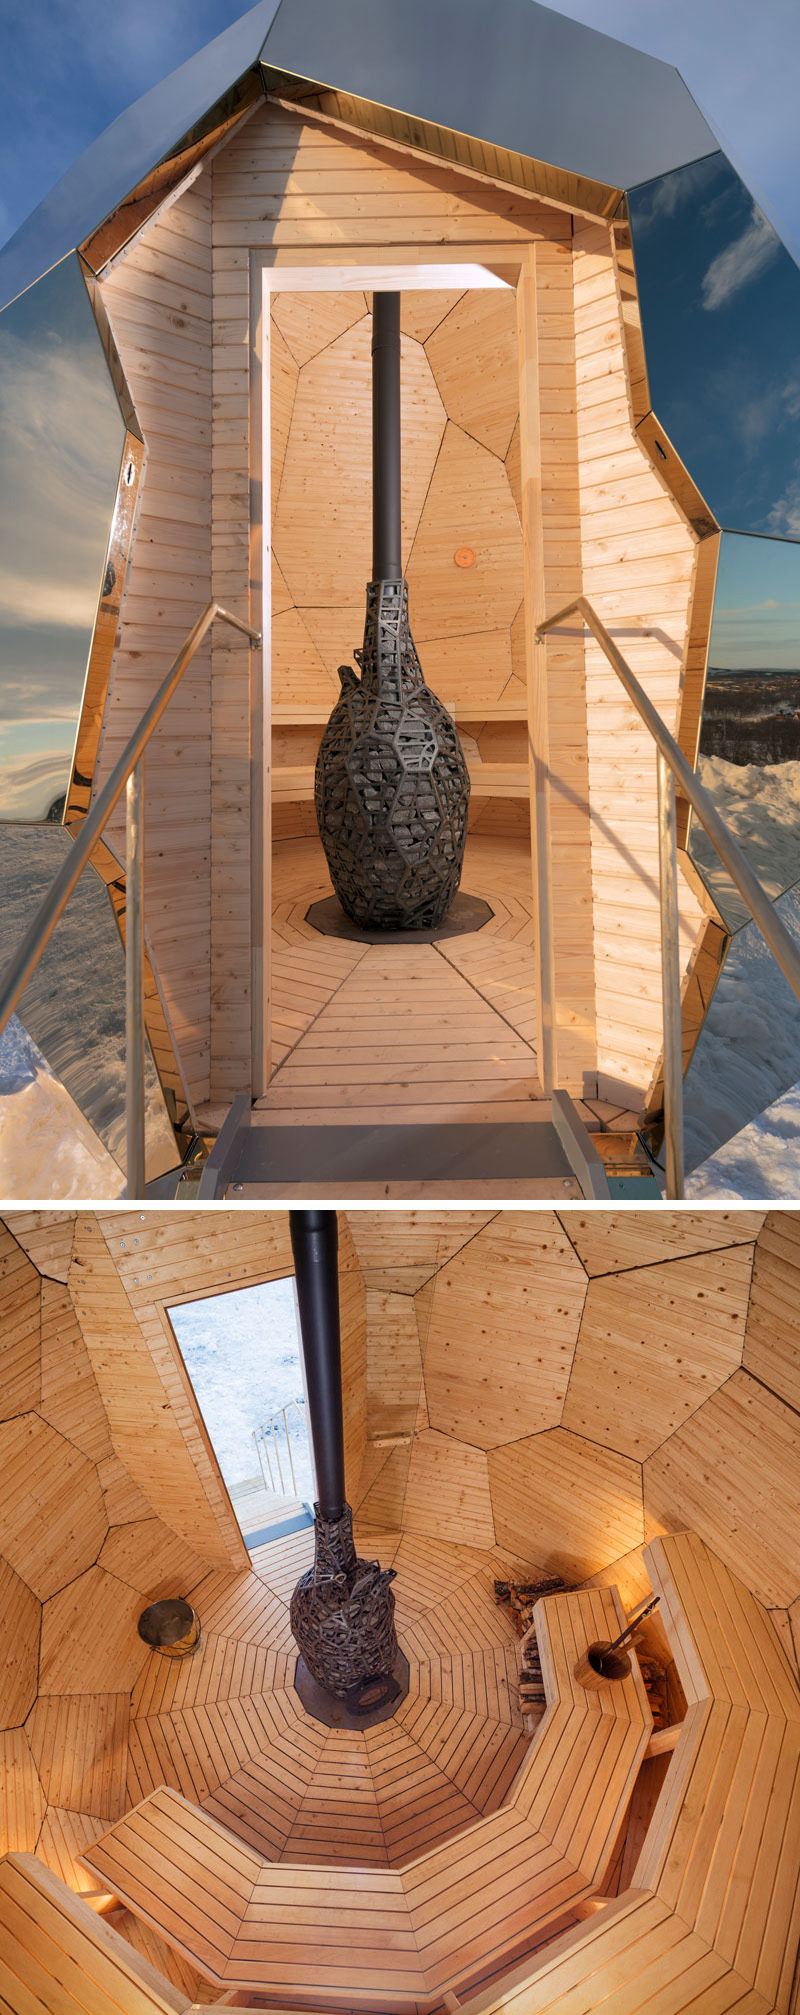 Inside this egg shaped sauna, multi-level wood seating with hidden lighting and patterned wood walls surround the fireplace. The fascinating egg can accomodate up to eight people at once.